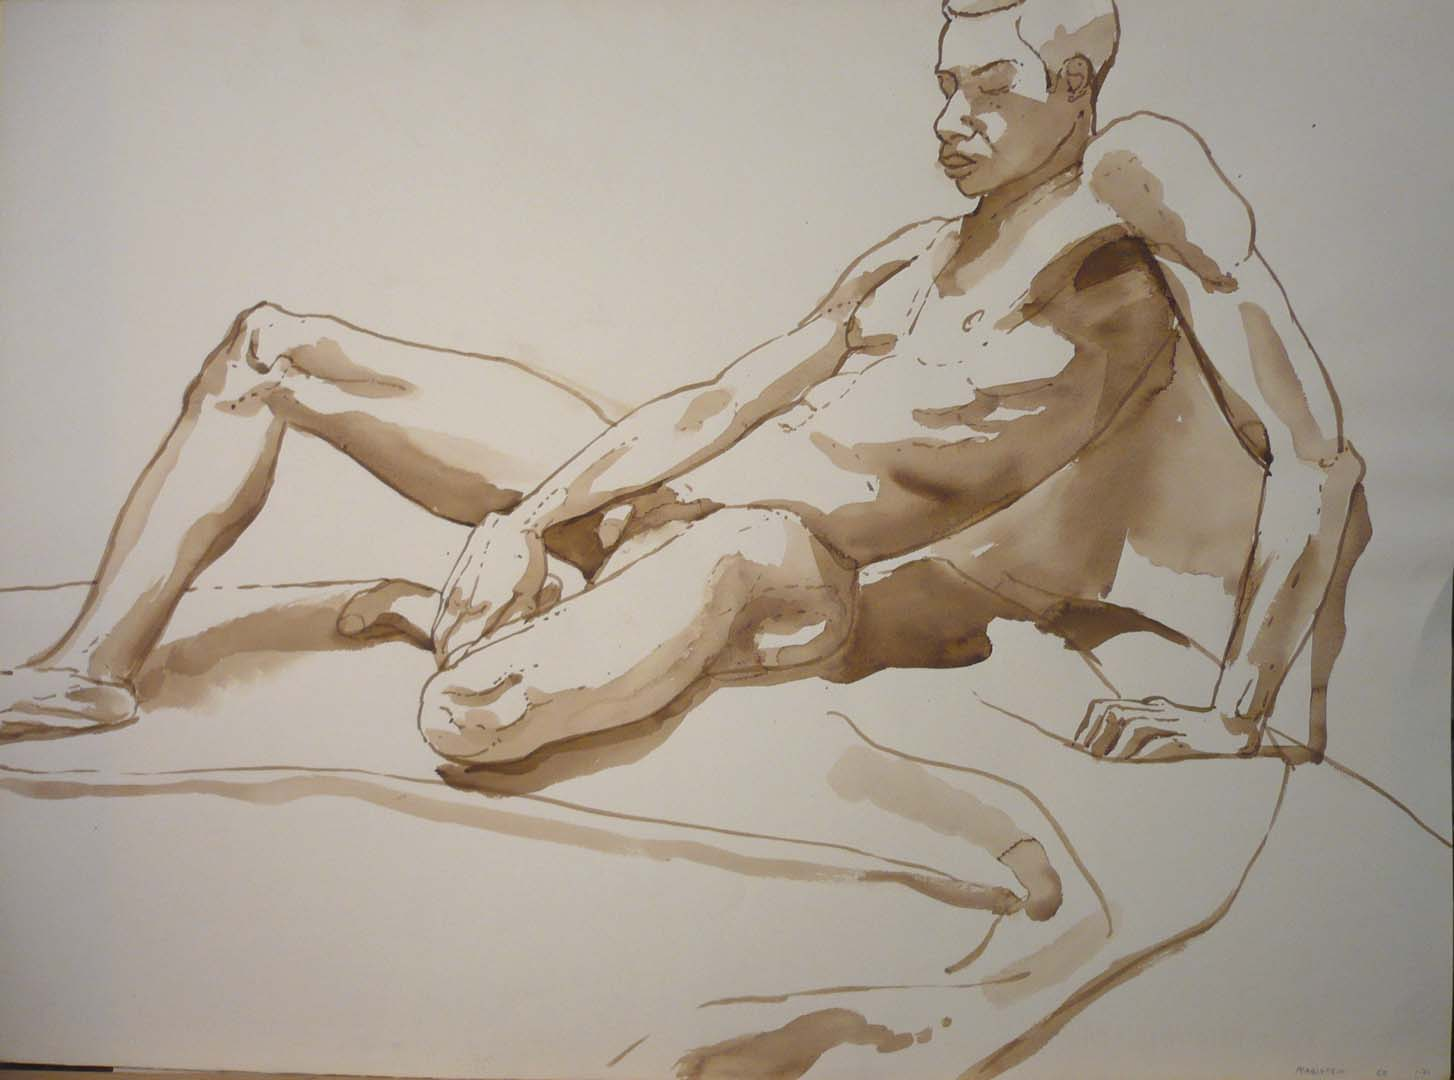 1968 Leaning Male Model Sepia 22 x 29.875